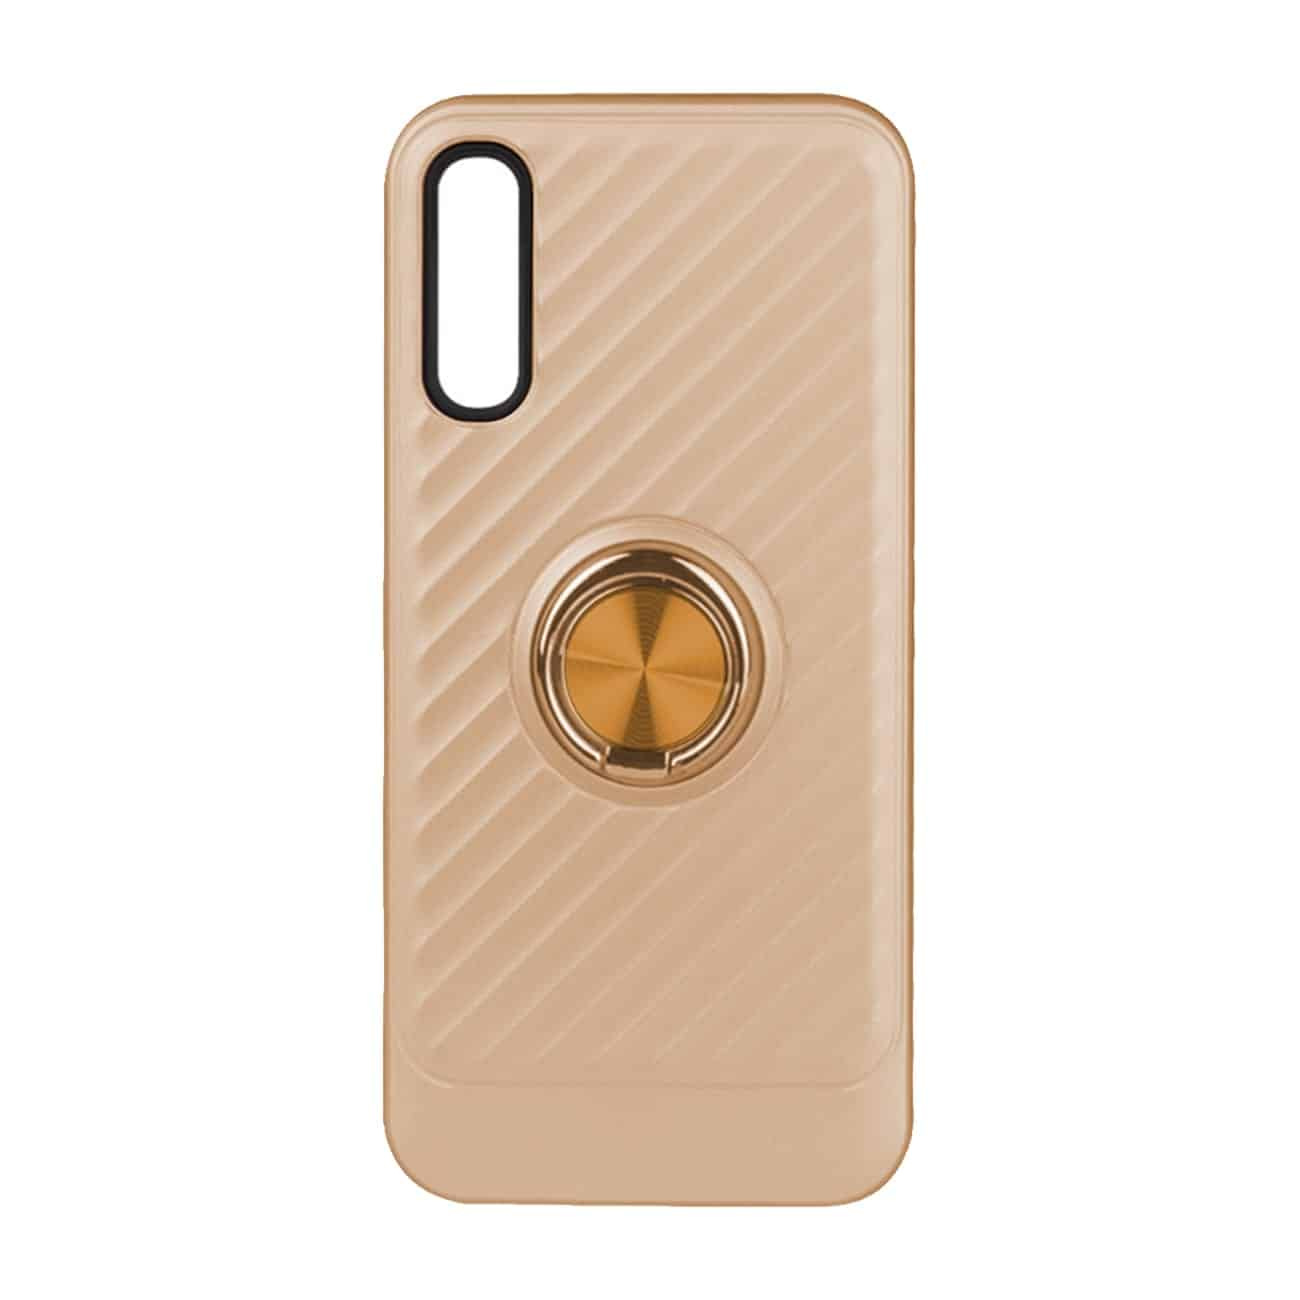 SAMSUNG GALAXY A70 Case with Ring Holder InGold